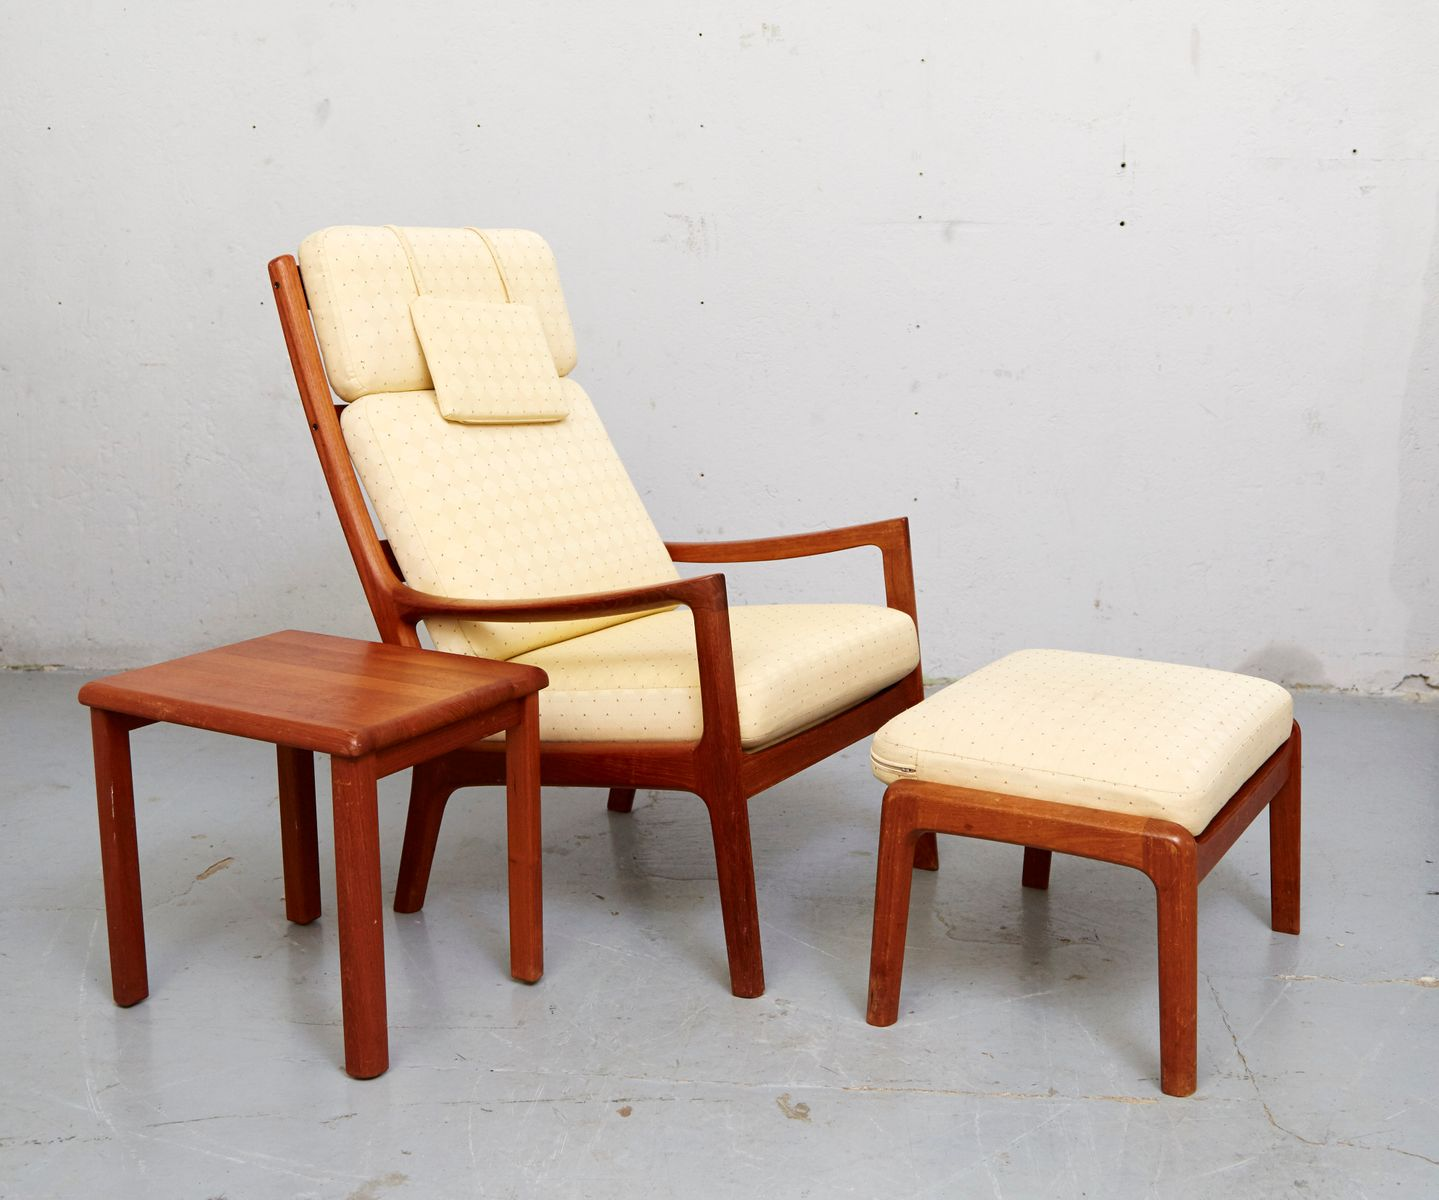 Vintage Senator Lounge Chair, Ottoman U0026 Side Table By Ole Wanscher For CADO